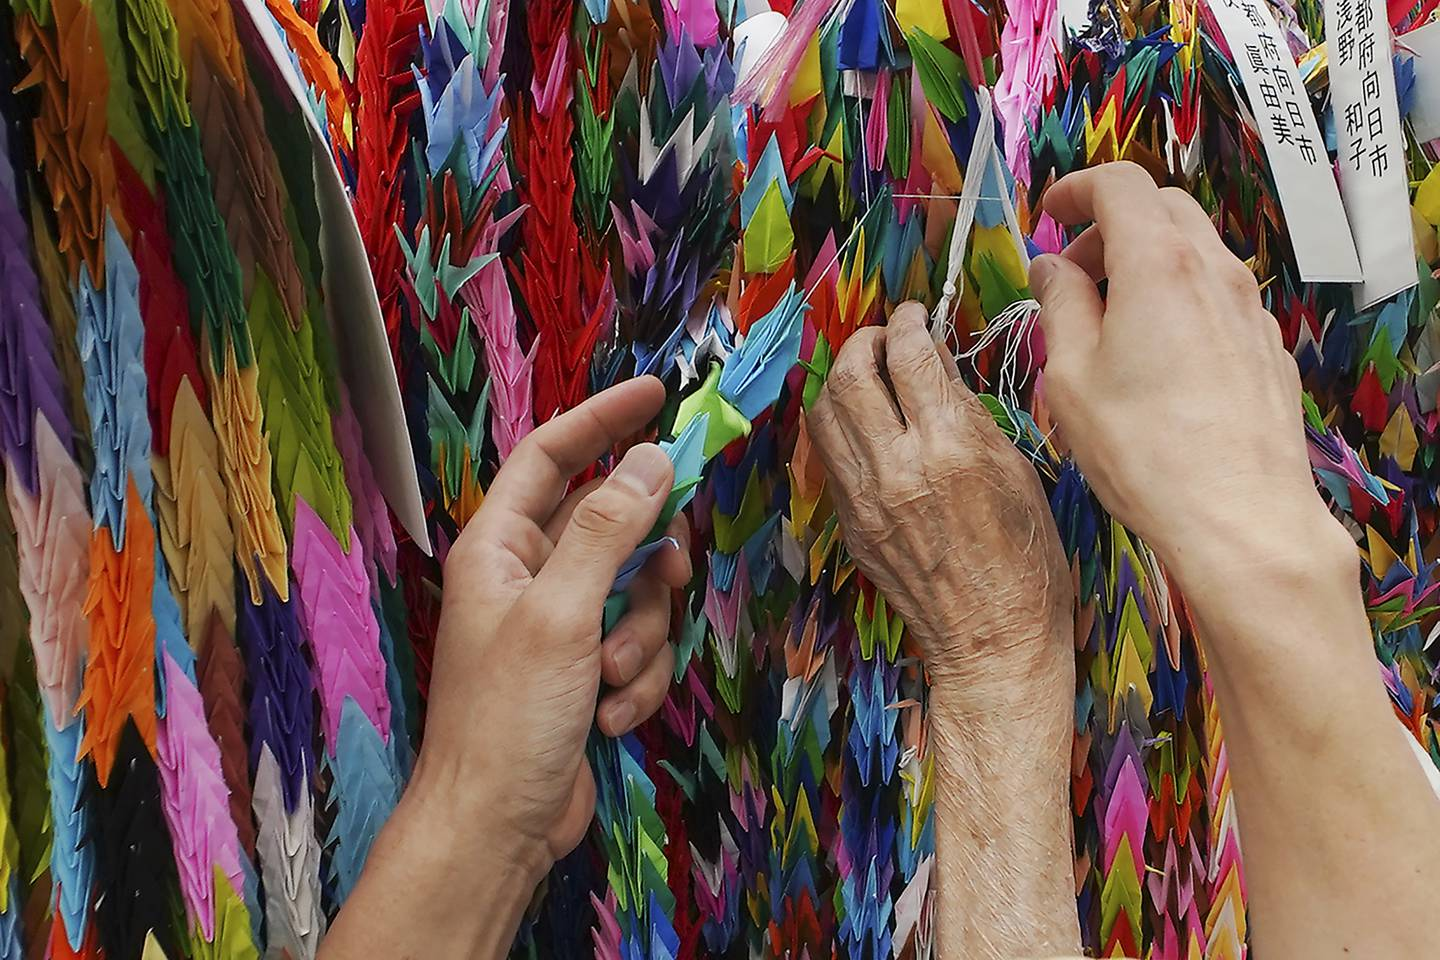 Hatsue Onda, center, is helped by Kengo Onda to offer strings of colorful paper cranes to the victims of the 1945 Atomic bombing near Hiroshima Peace Memorial Museum in Hiroshima, Japan, Monday, Aug. 3, 2020.